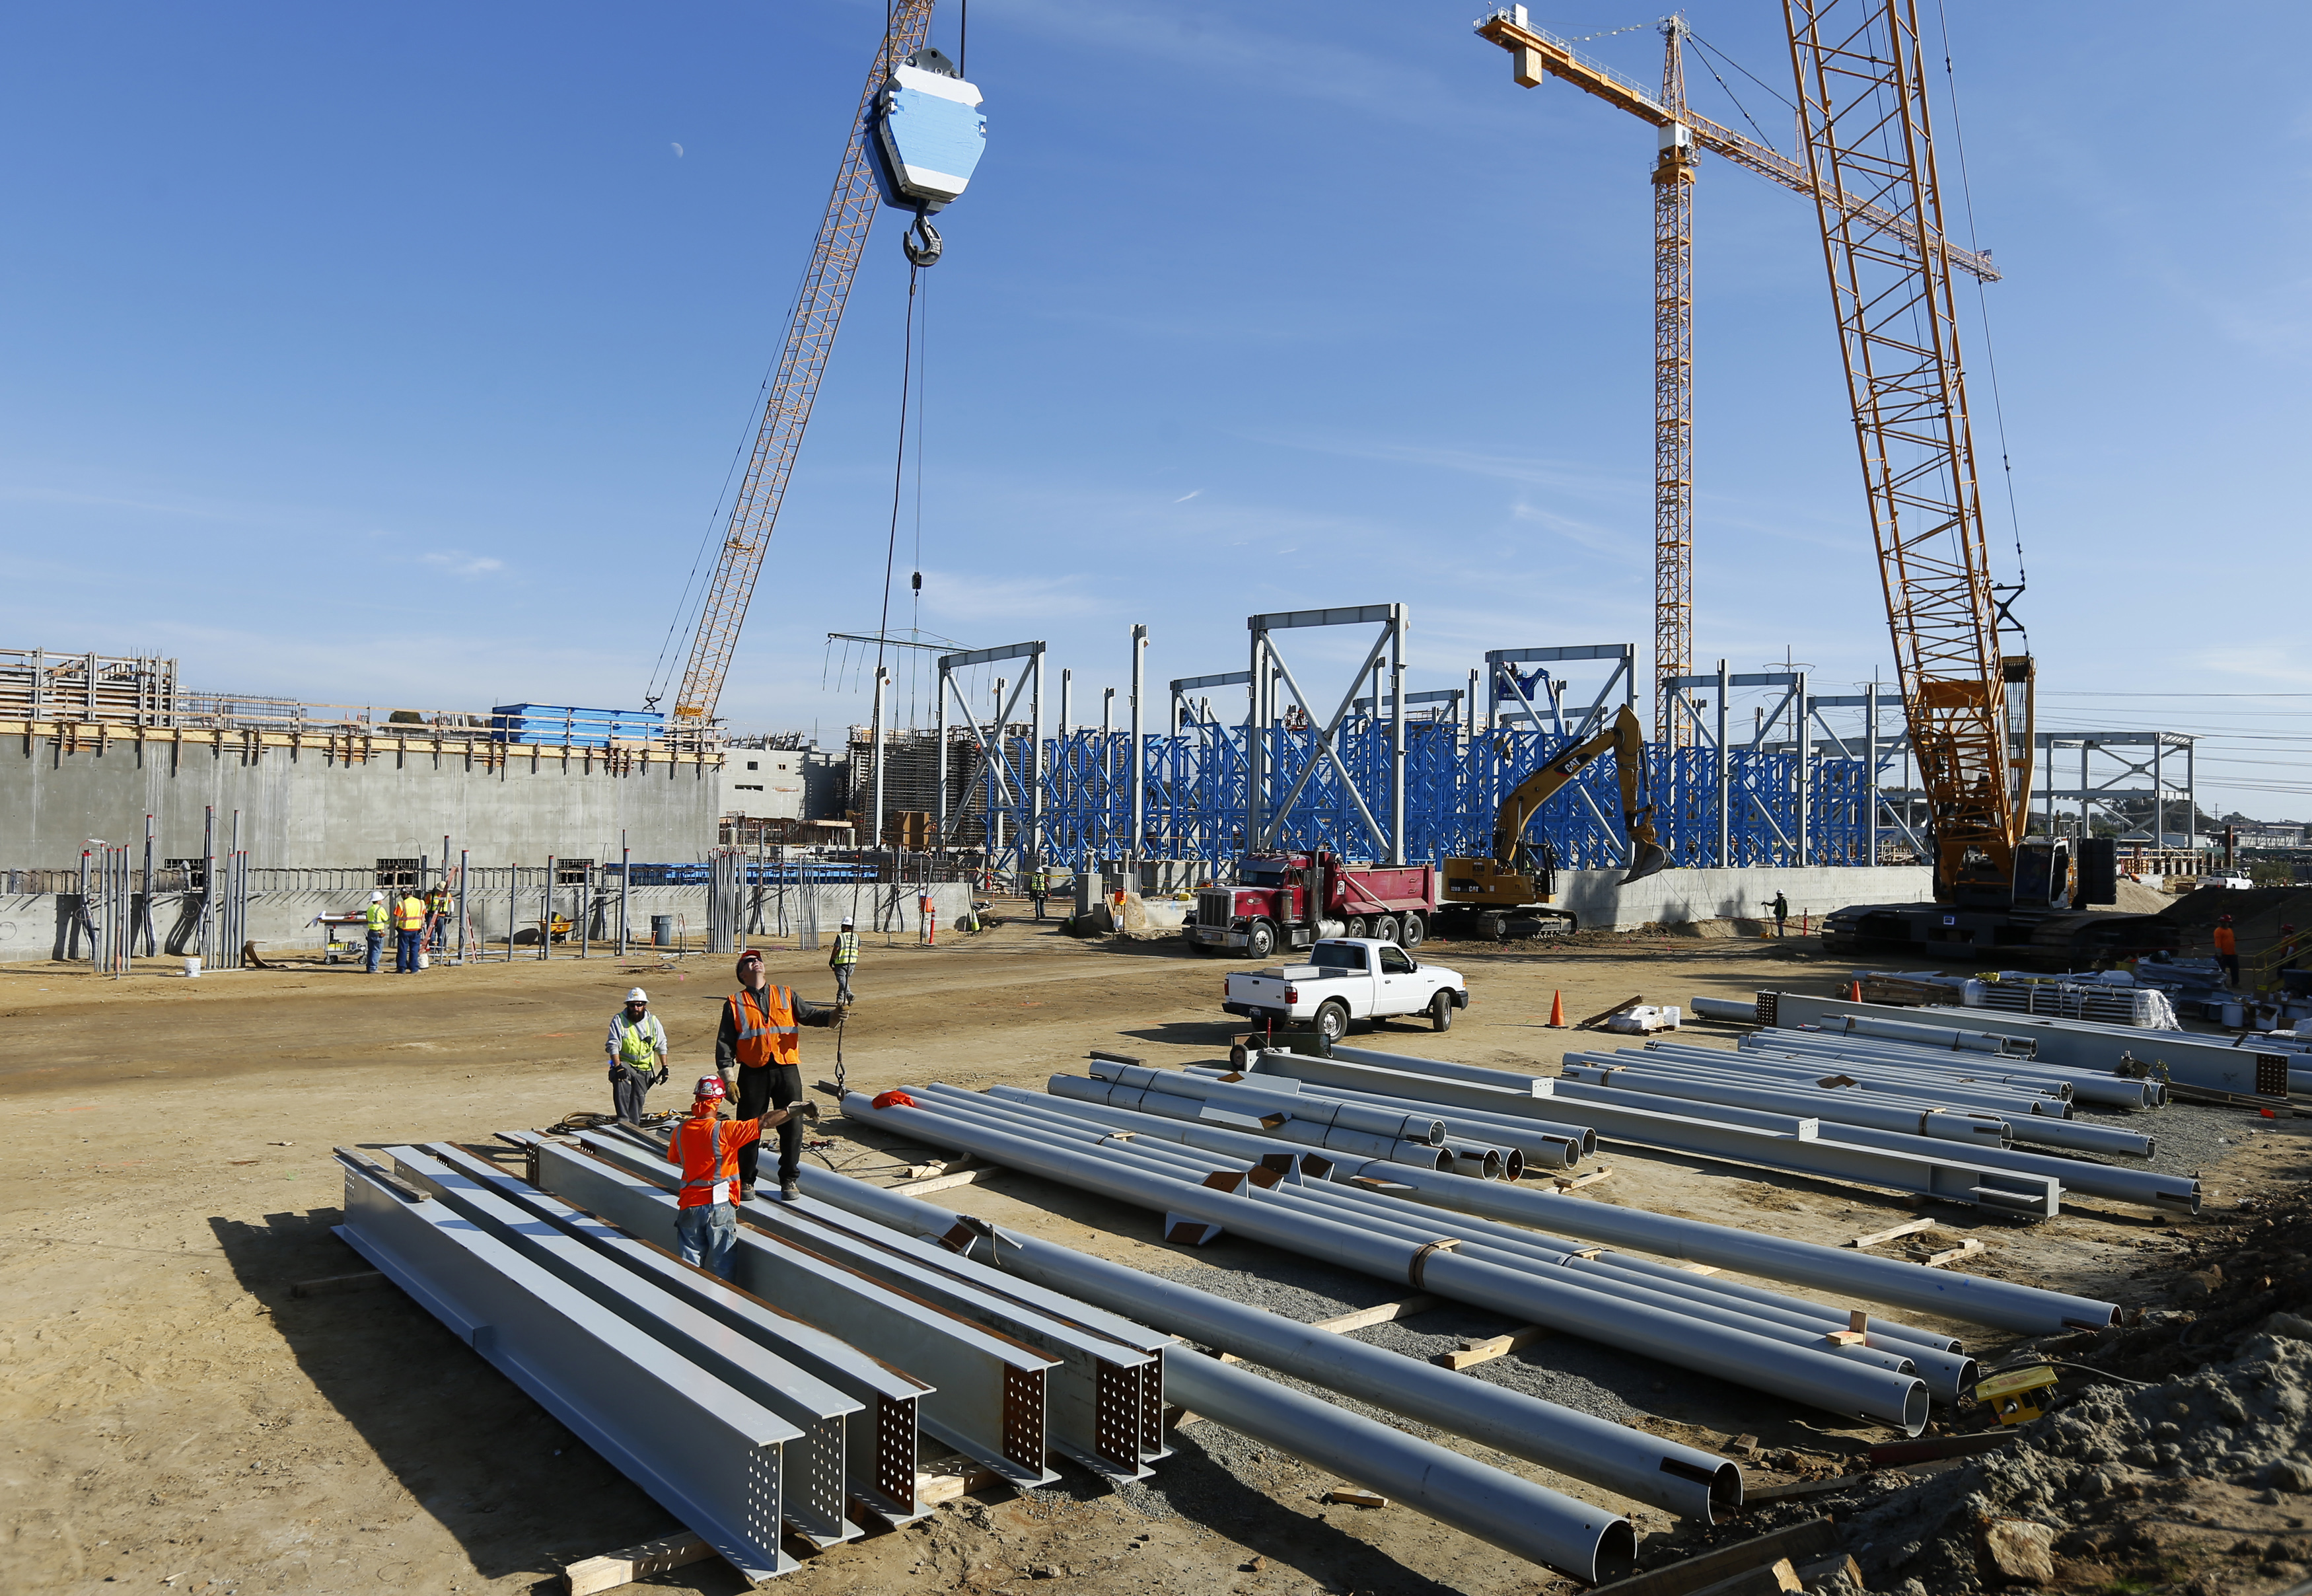 Construction continues on the Western Hemisphere's largest seawater desalination plant in Carlsbad